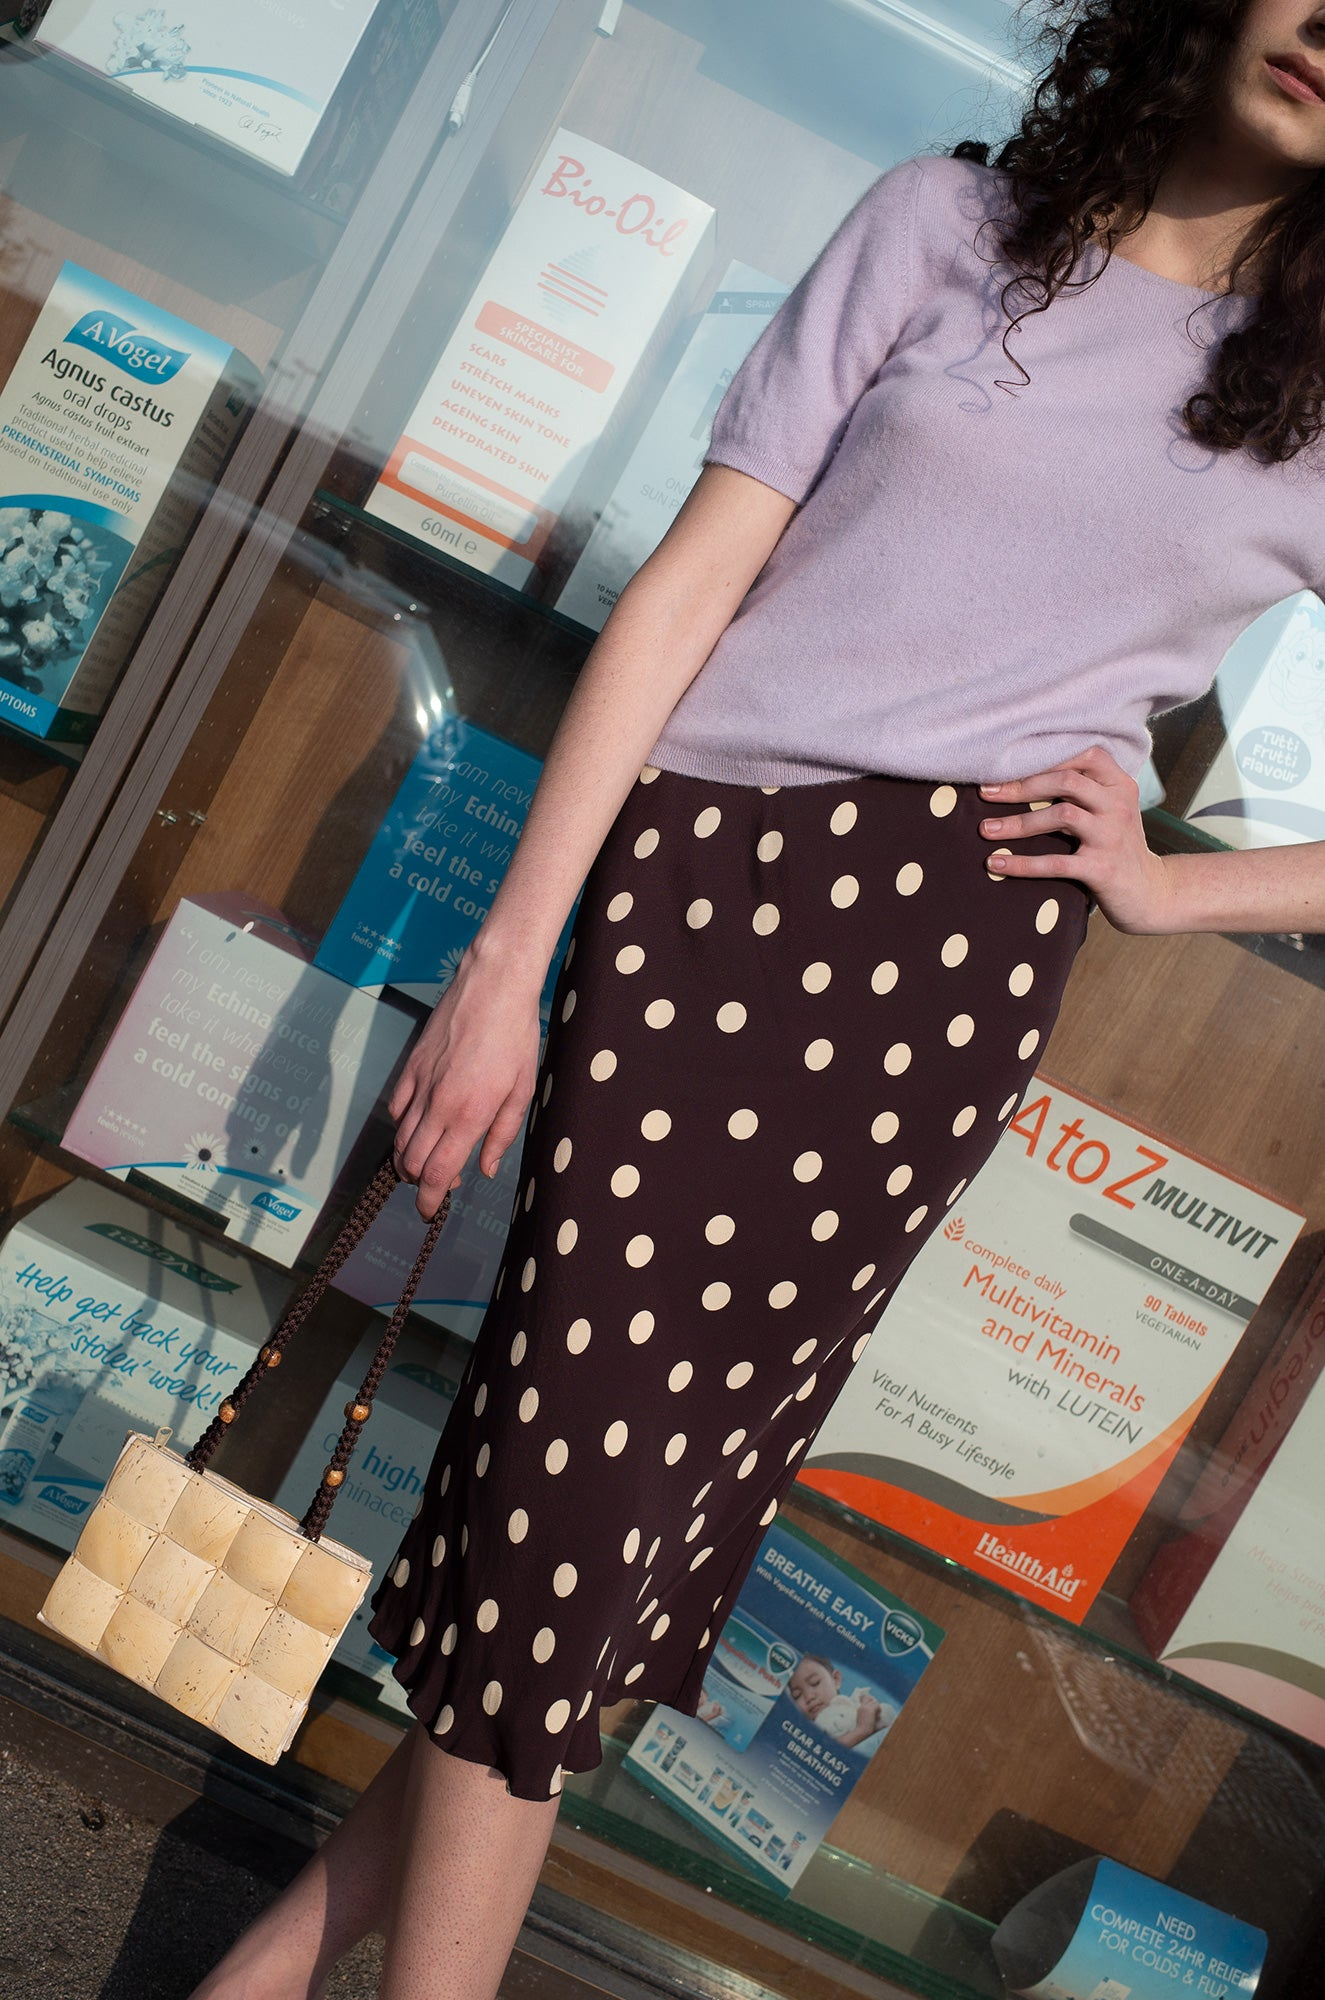 Rosalind Jana wears lilac cashmere short-sleeve jumper with brown polka dot slip skirt by Human Sea Vintage